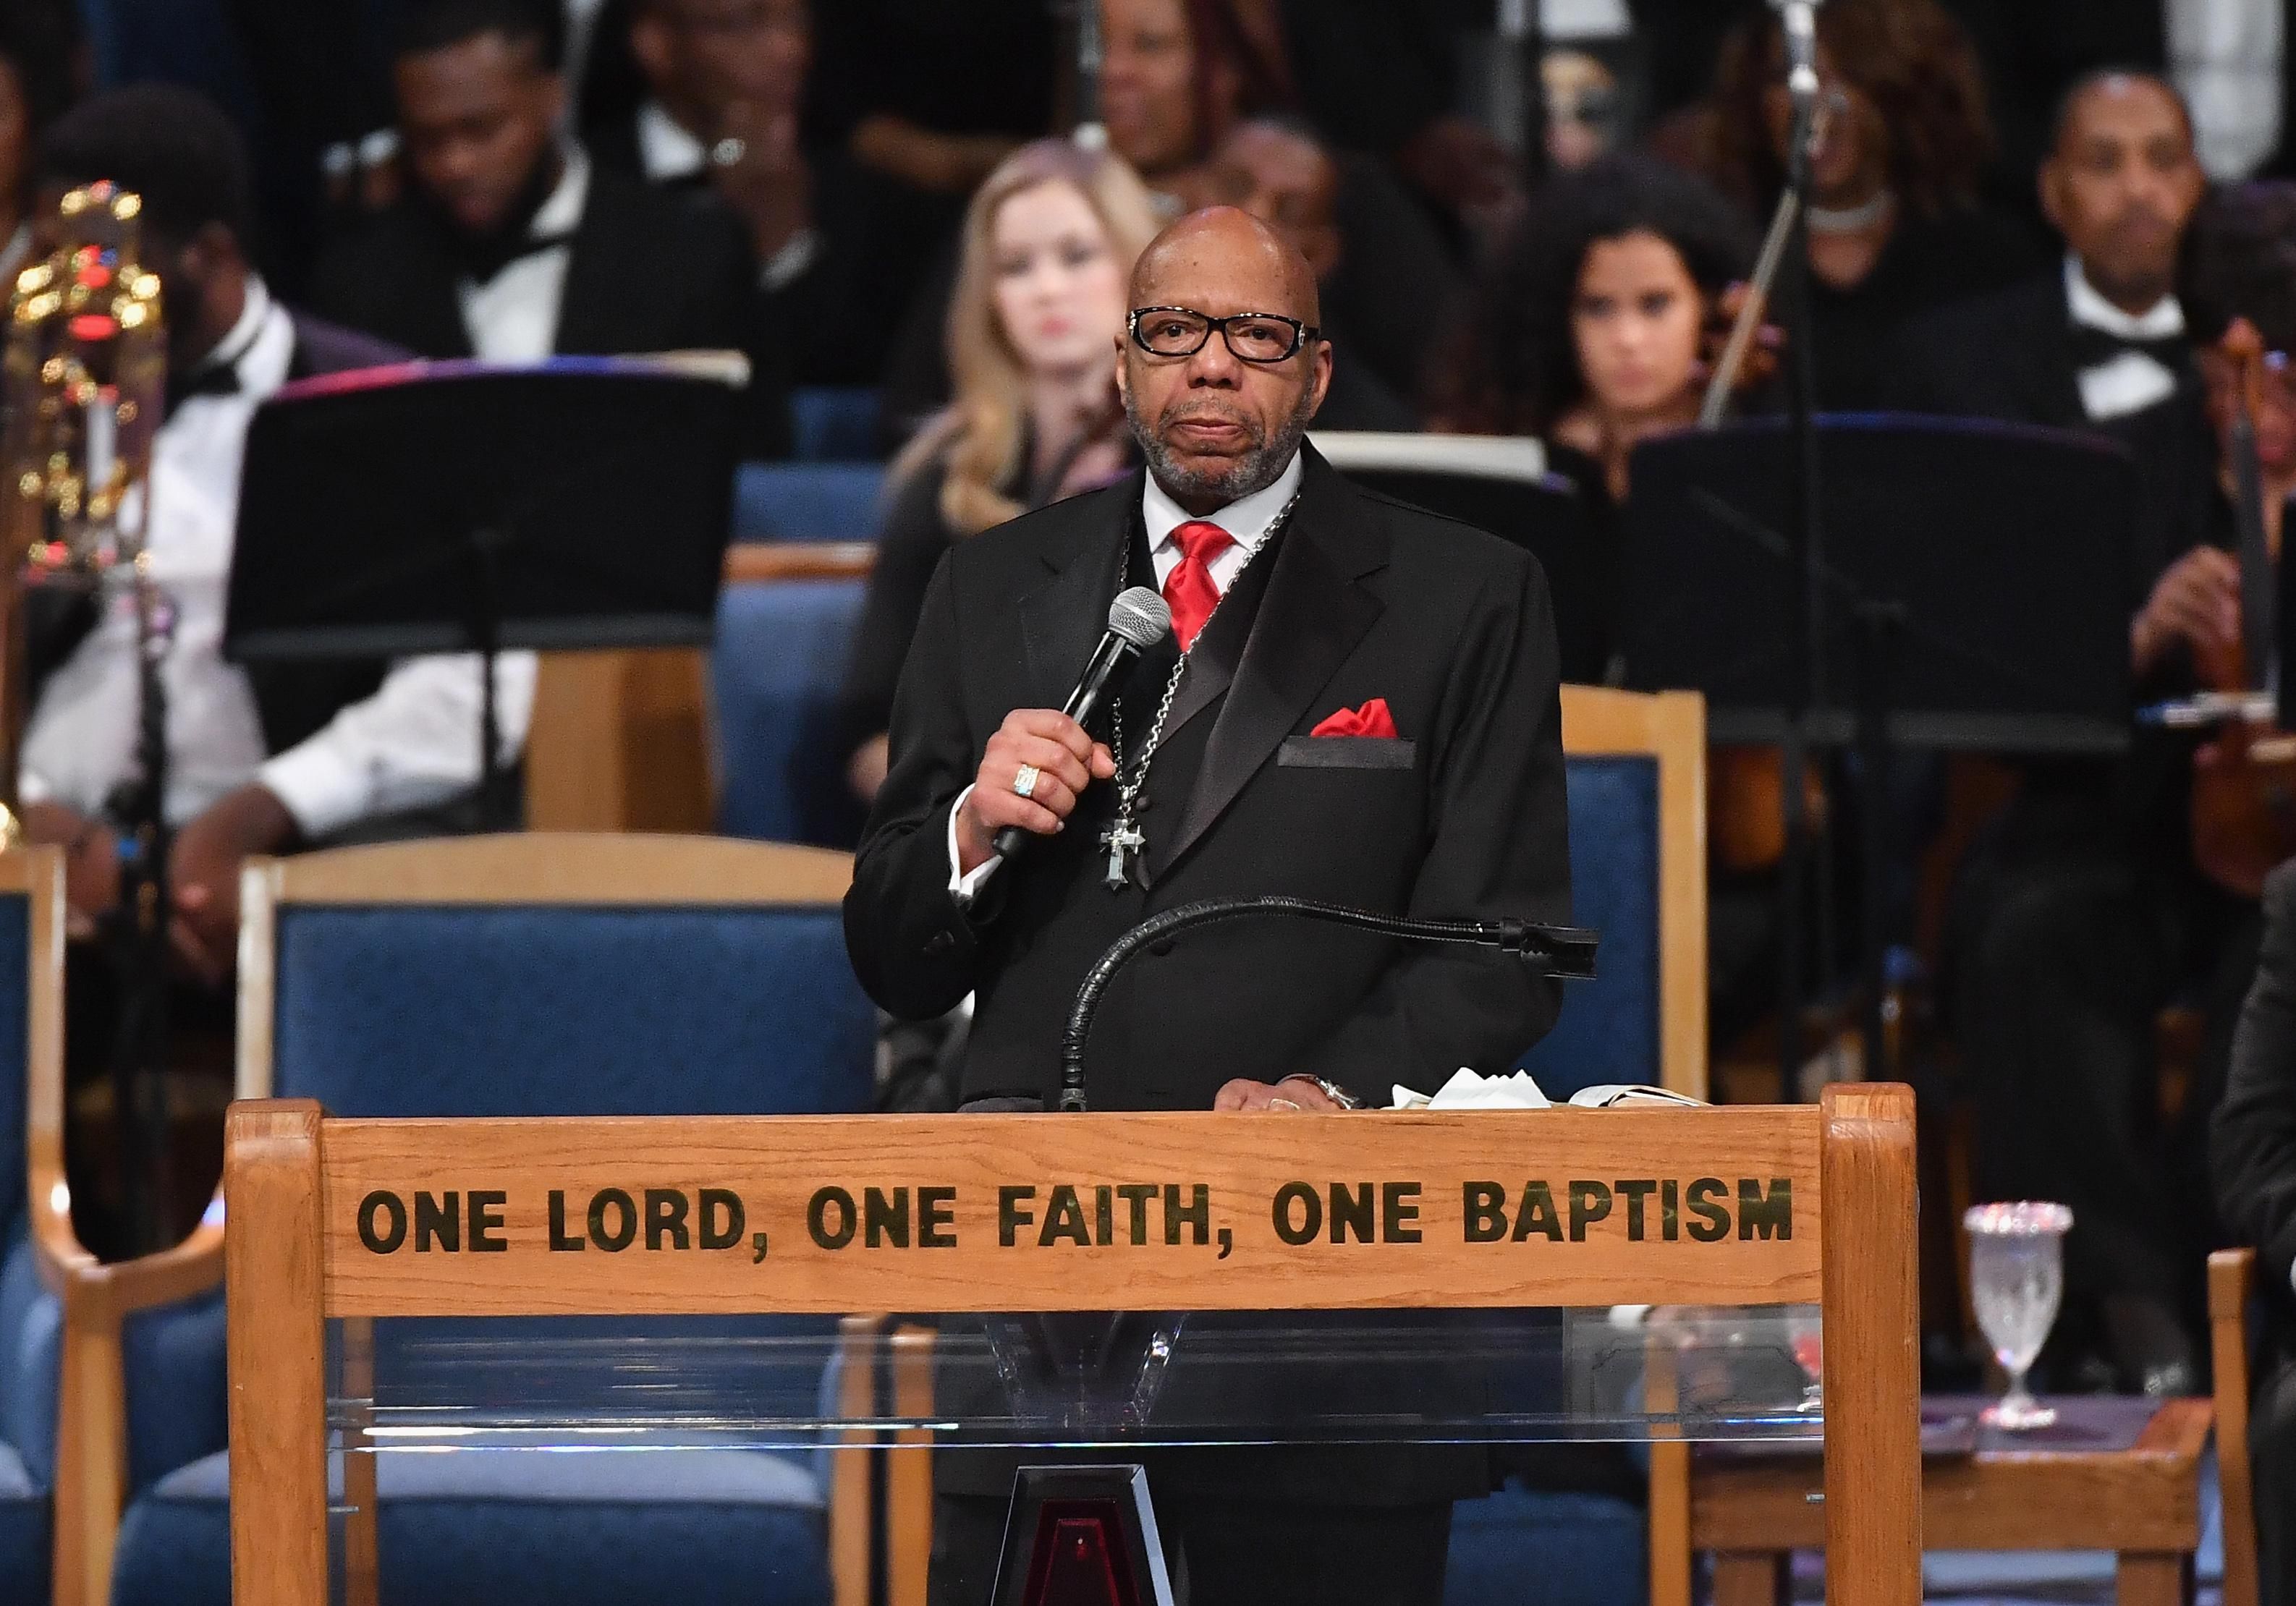 Rev. Jasper Williams Jr. stands on a pulpit with the engraving ONE LORD, ONE FAITH, ONE BAPTISM.